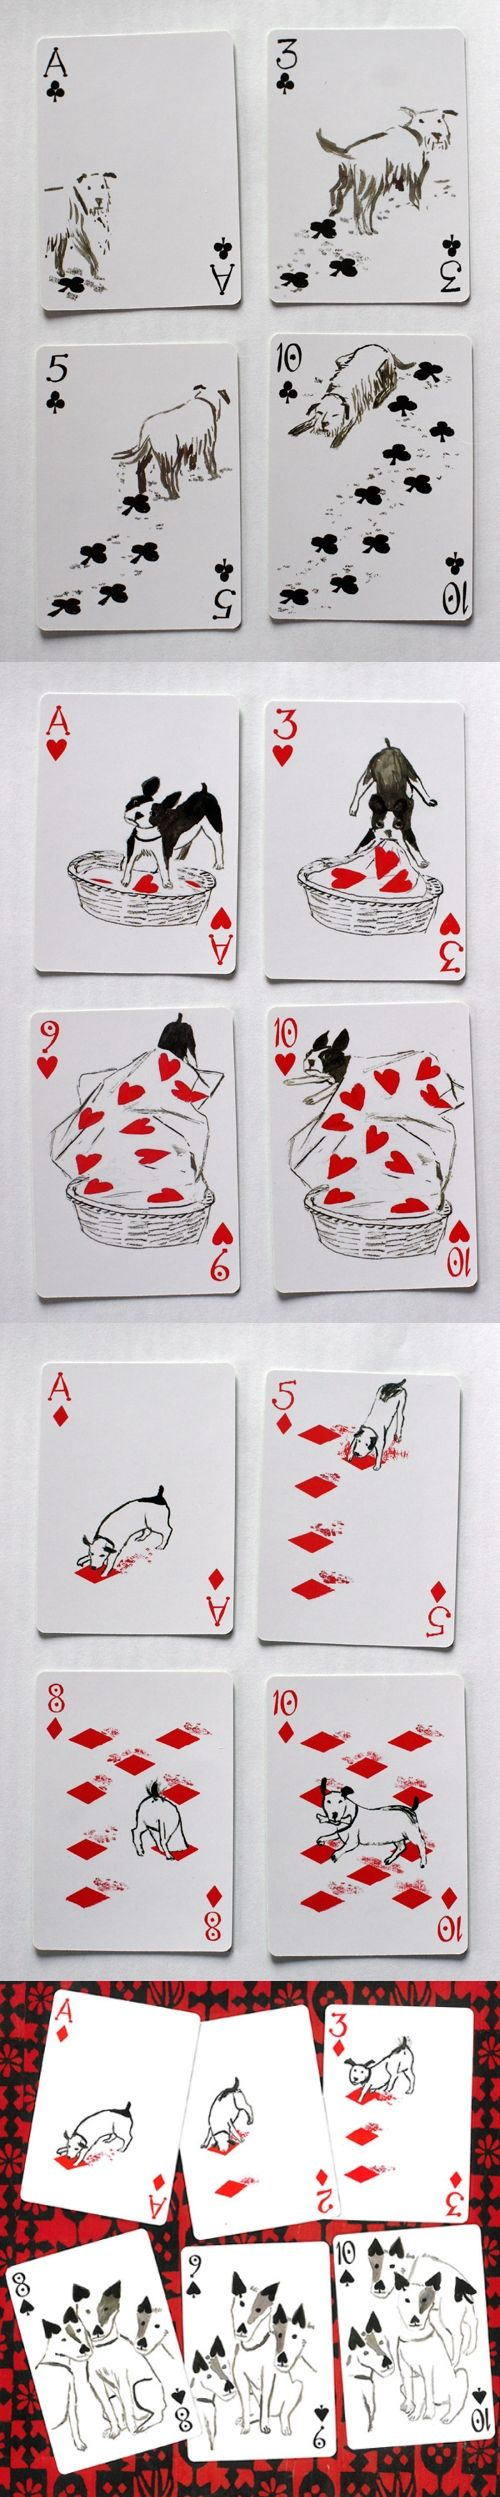 "This has to be one of the cutest decks of cards ever!  ""Pack of Dogs"" playing cards are from a series of four decks designed by John Littleboy in 2006, & produced by Inky Dinky. The pip cards have been transformed from the standard positions into a sequence of images which tell a story. The other three decks are Mermaid Queen, Bag of Bones, & Kitten Club. They're priced at $9.50 from http://www.artiphany.com/co... & other sources.  #myt"